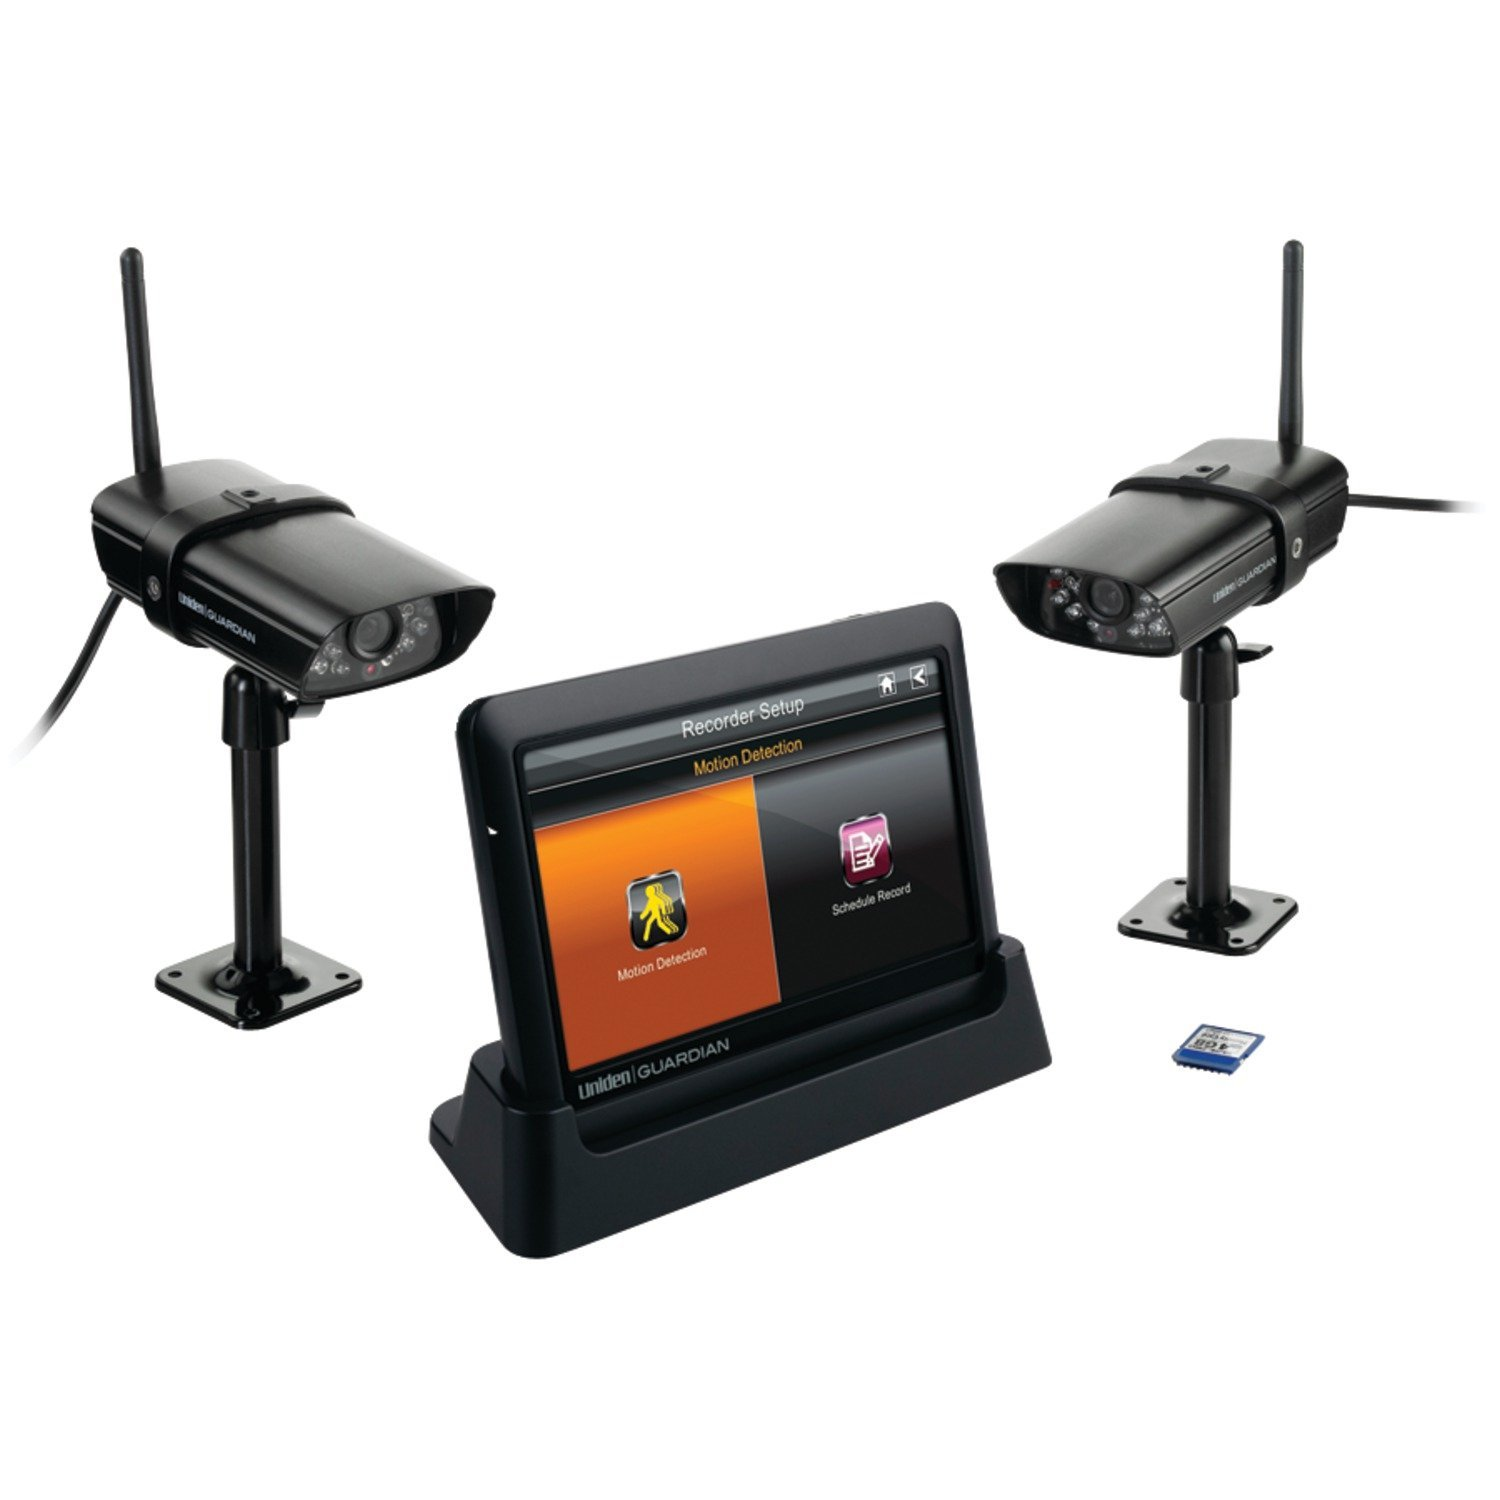 Guardian Wireless Security Systems